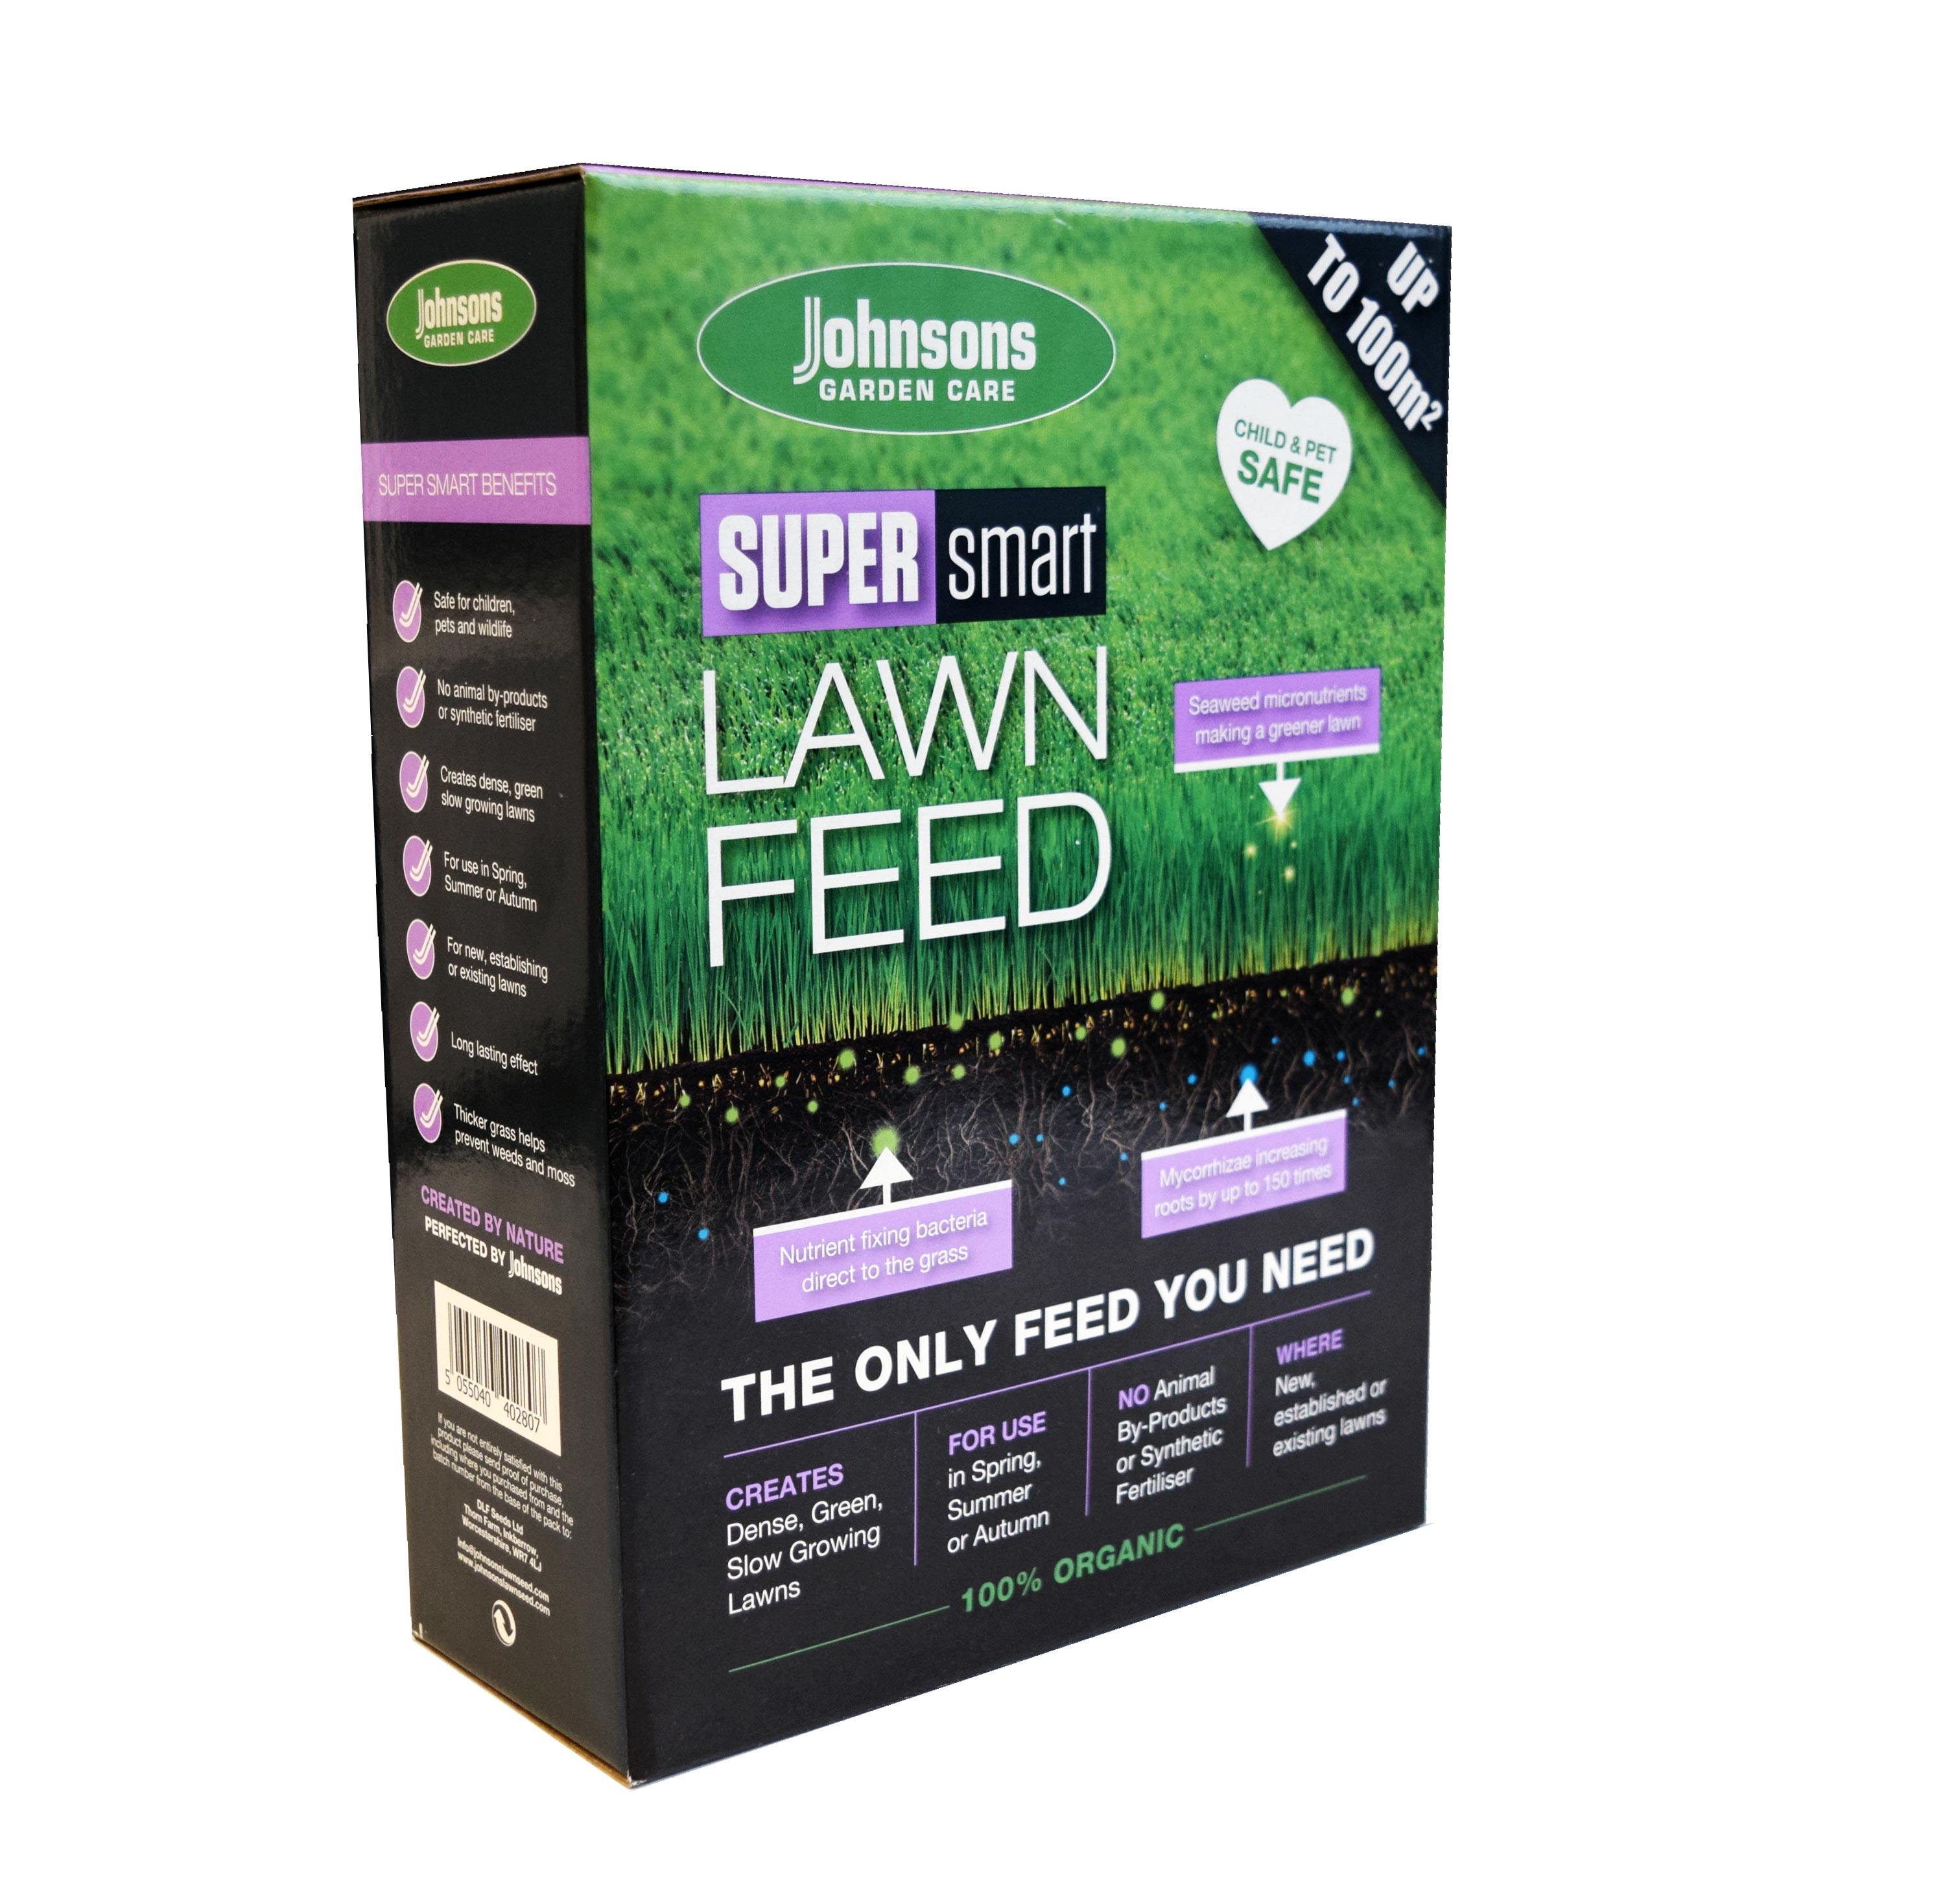 Super Smart Lawn feed 100% Organic Ingredients child and pet friendly